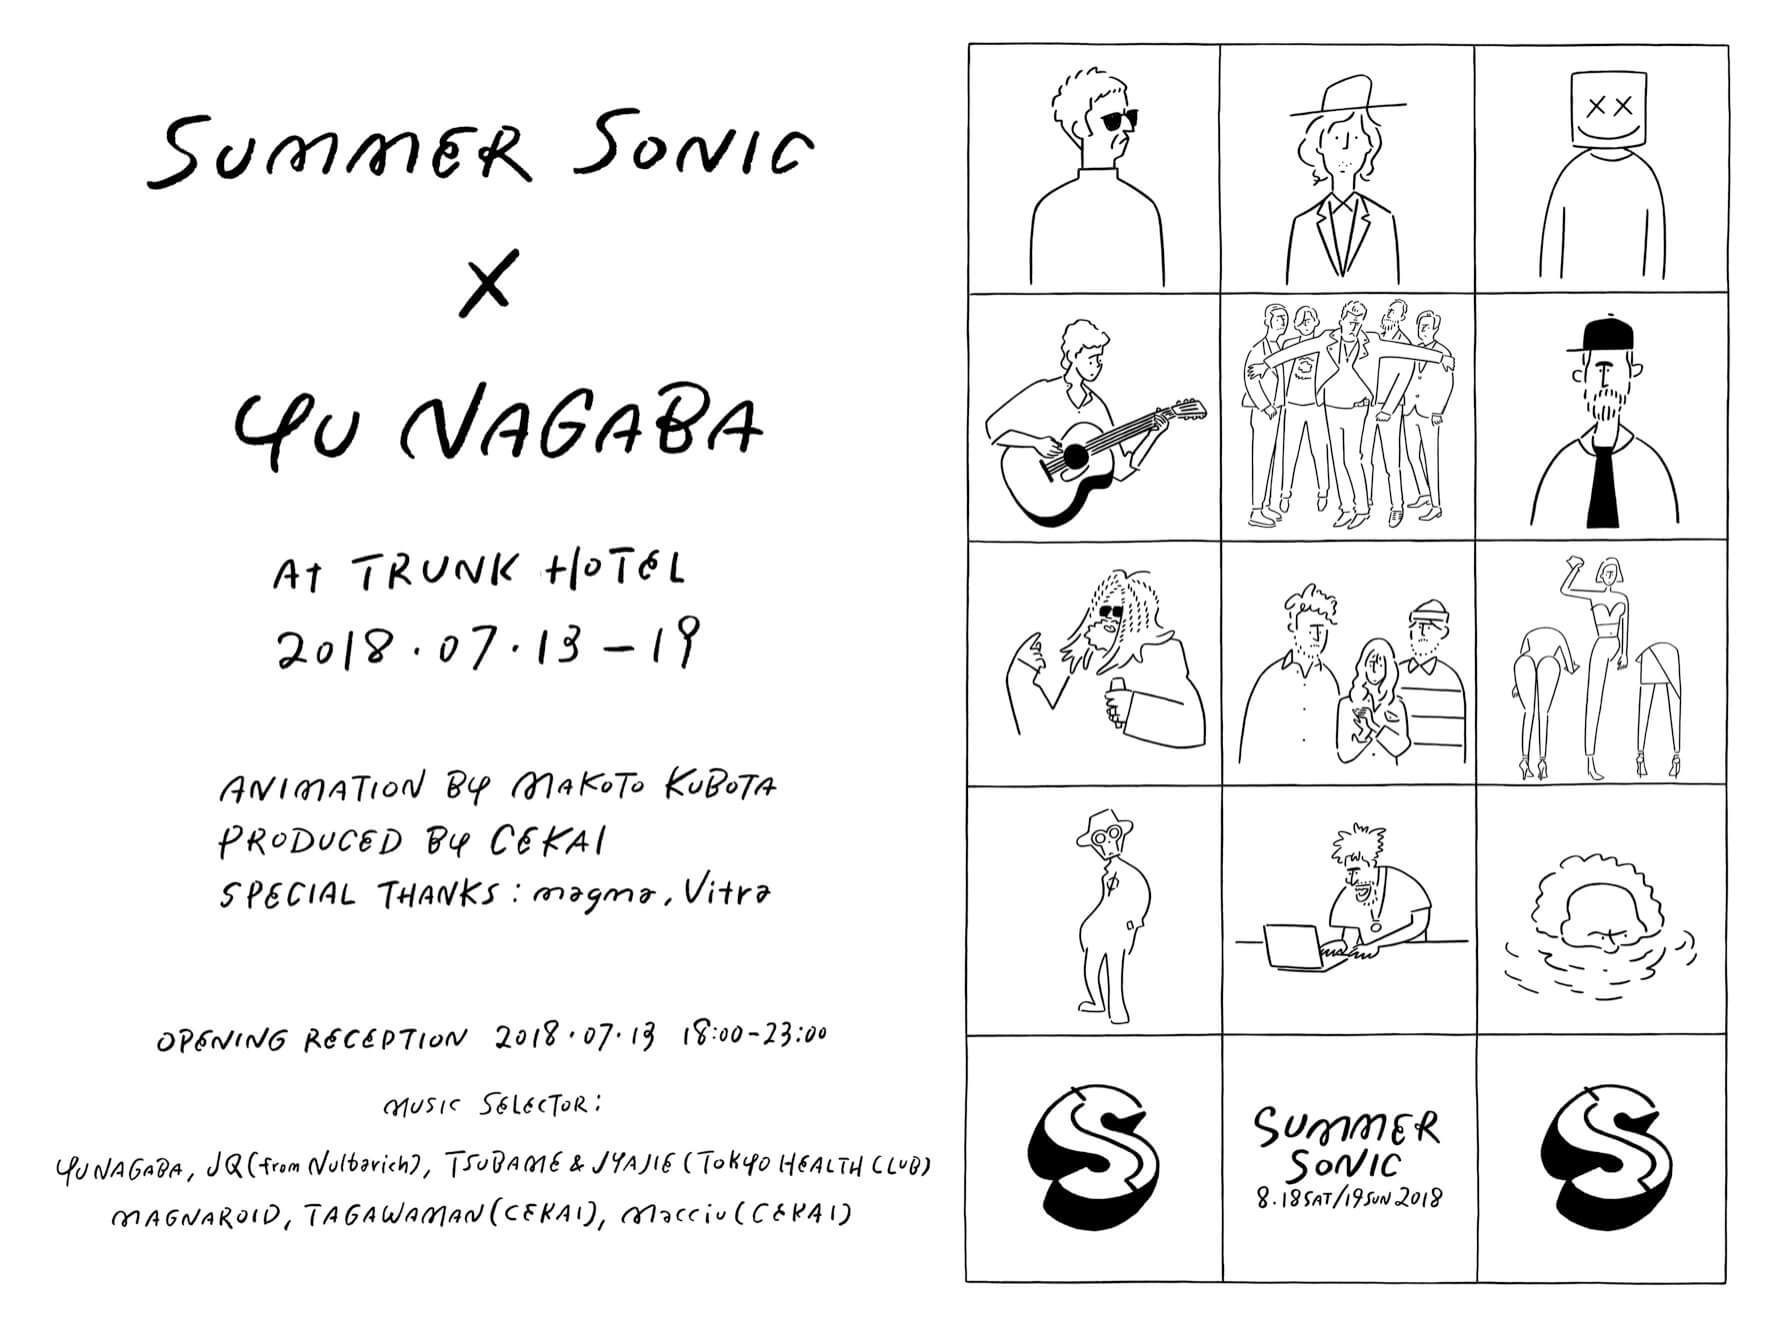 """""""Summer Sonic x Yu Nagaba"""" Special Exhibition at TRUNK HOTEL"""